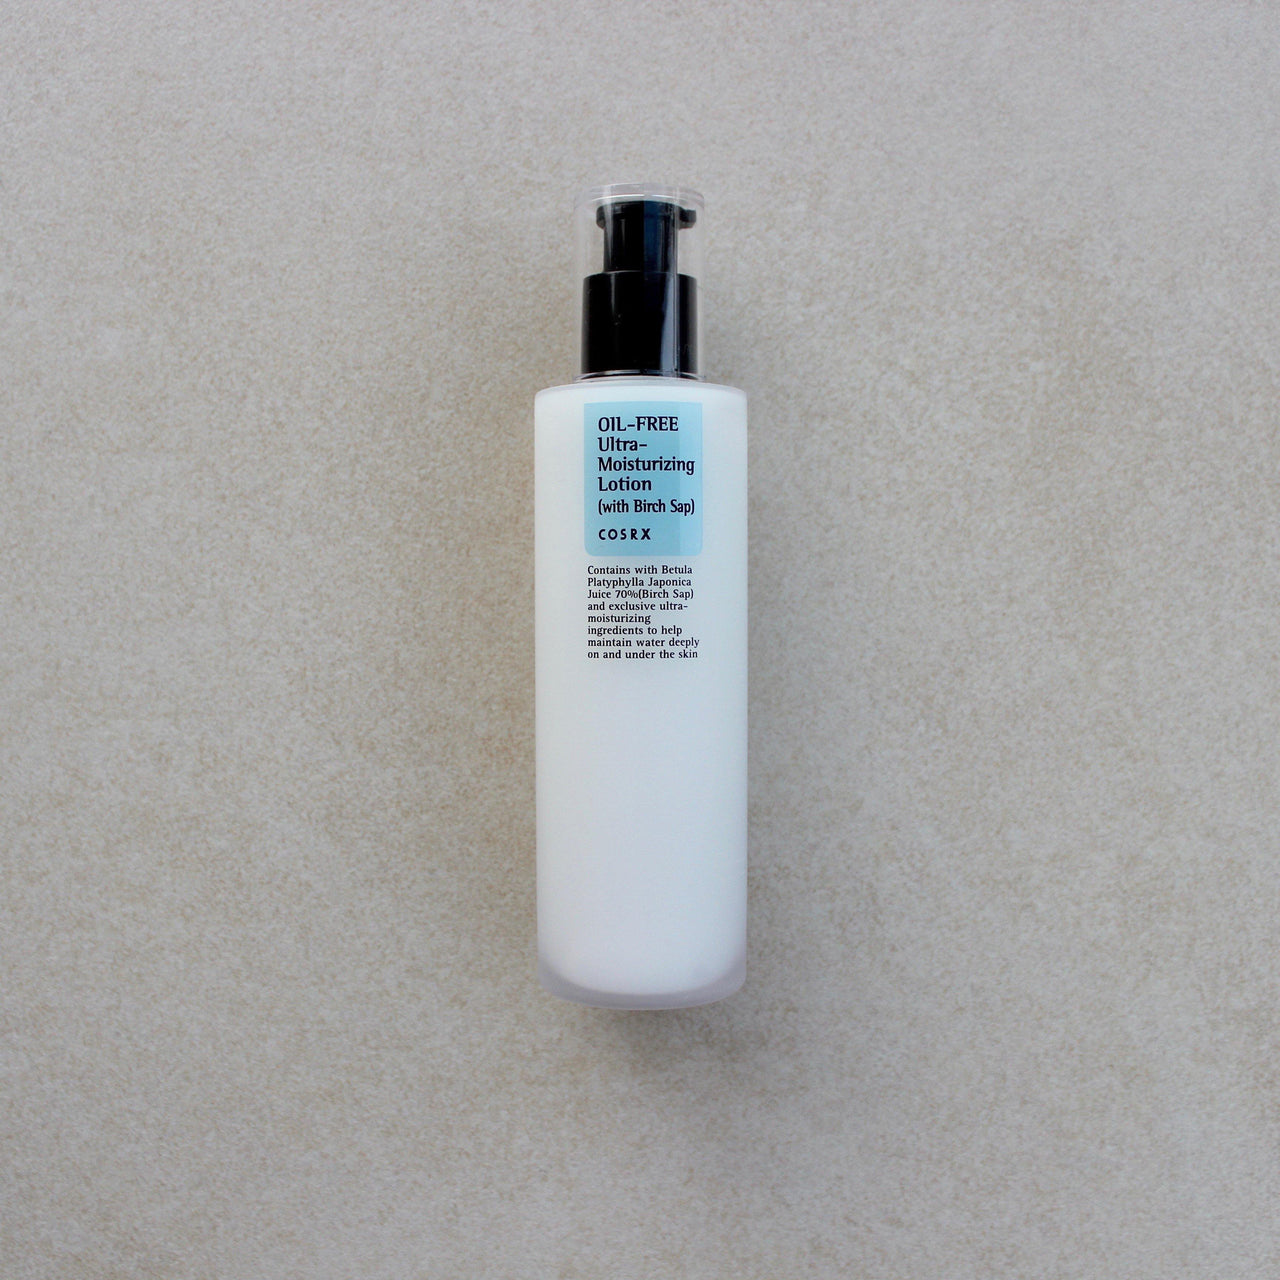 Oil-Free Ultra Moisturizing Lotion - Nashi Lab